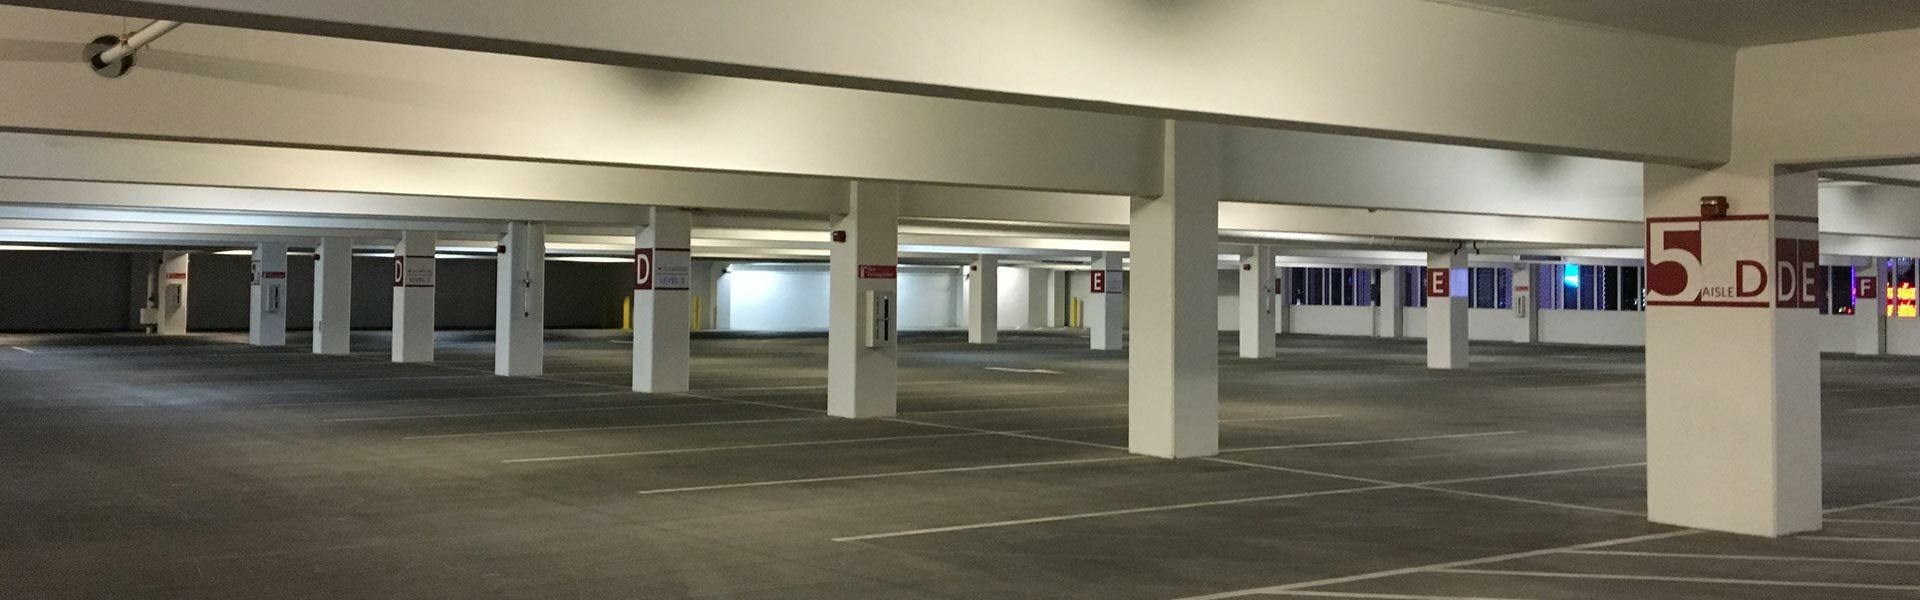 Parking Decks, Garages & Lots